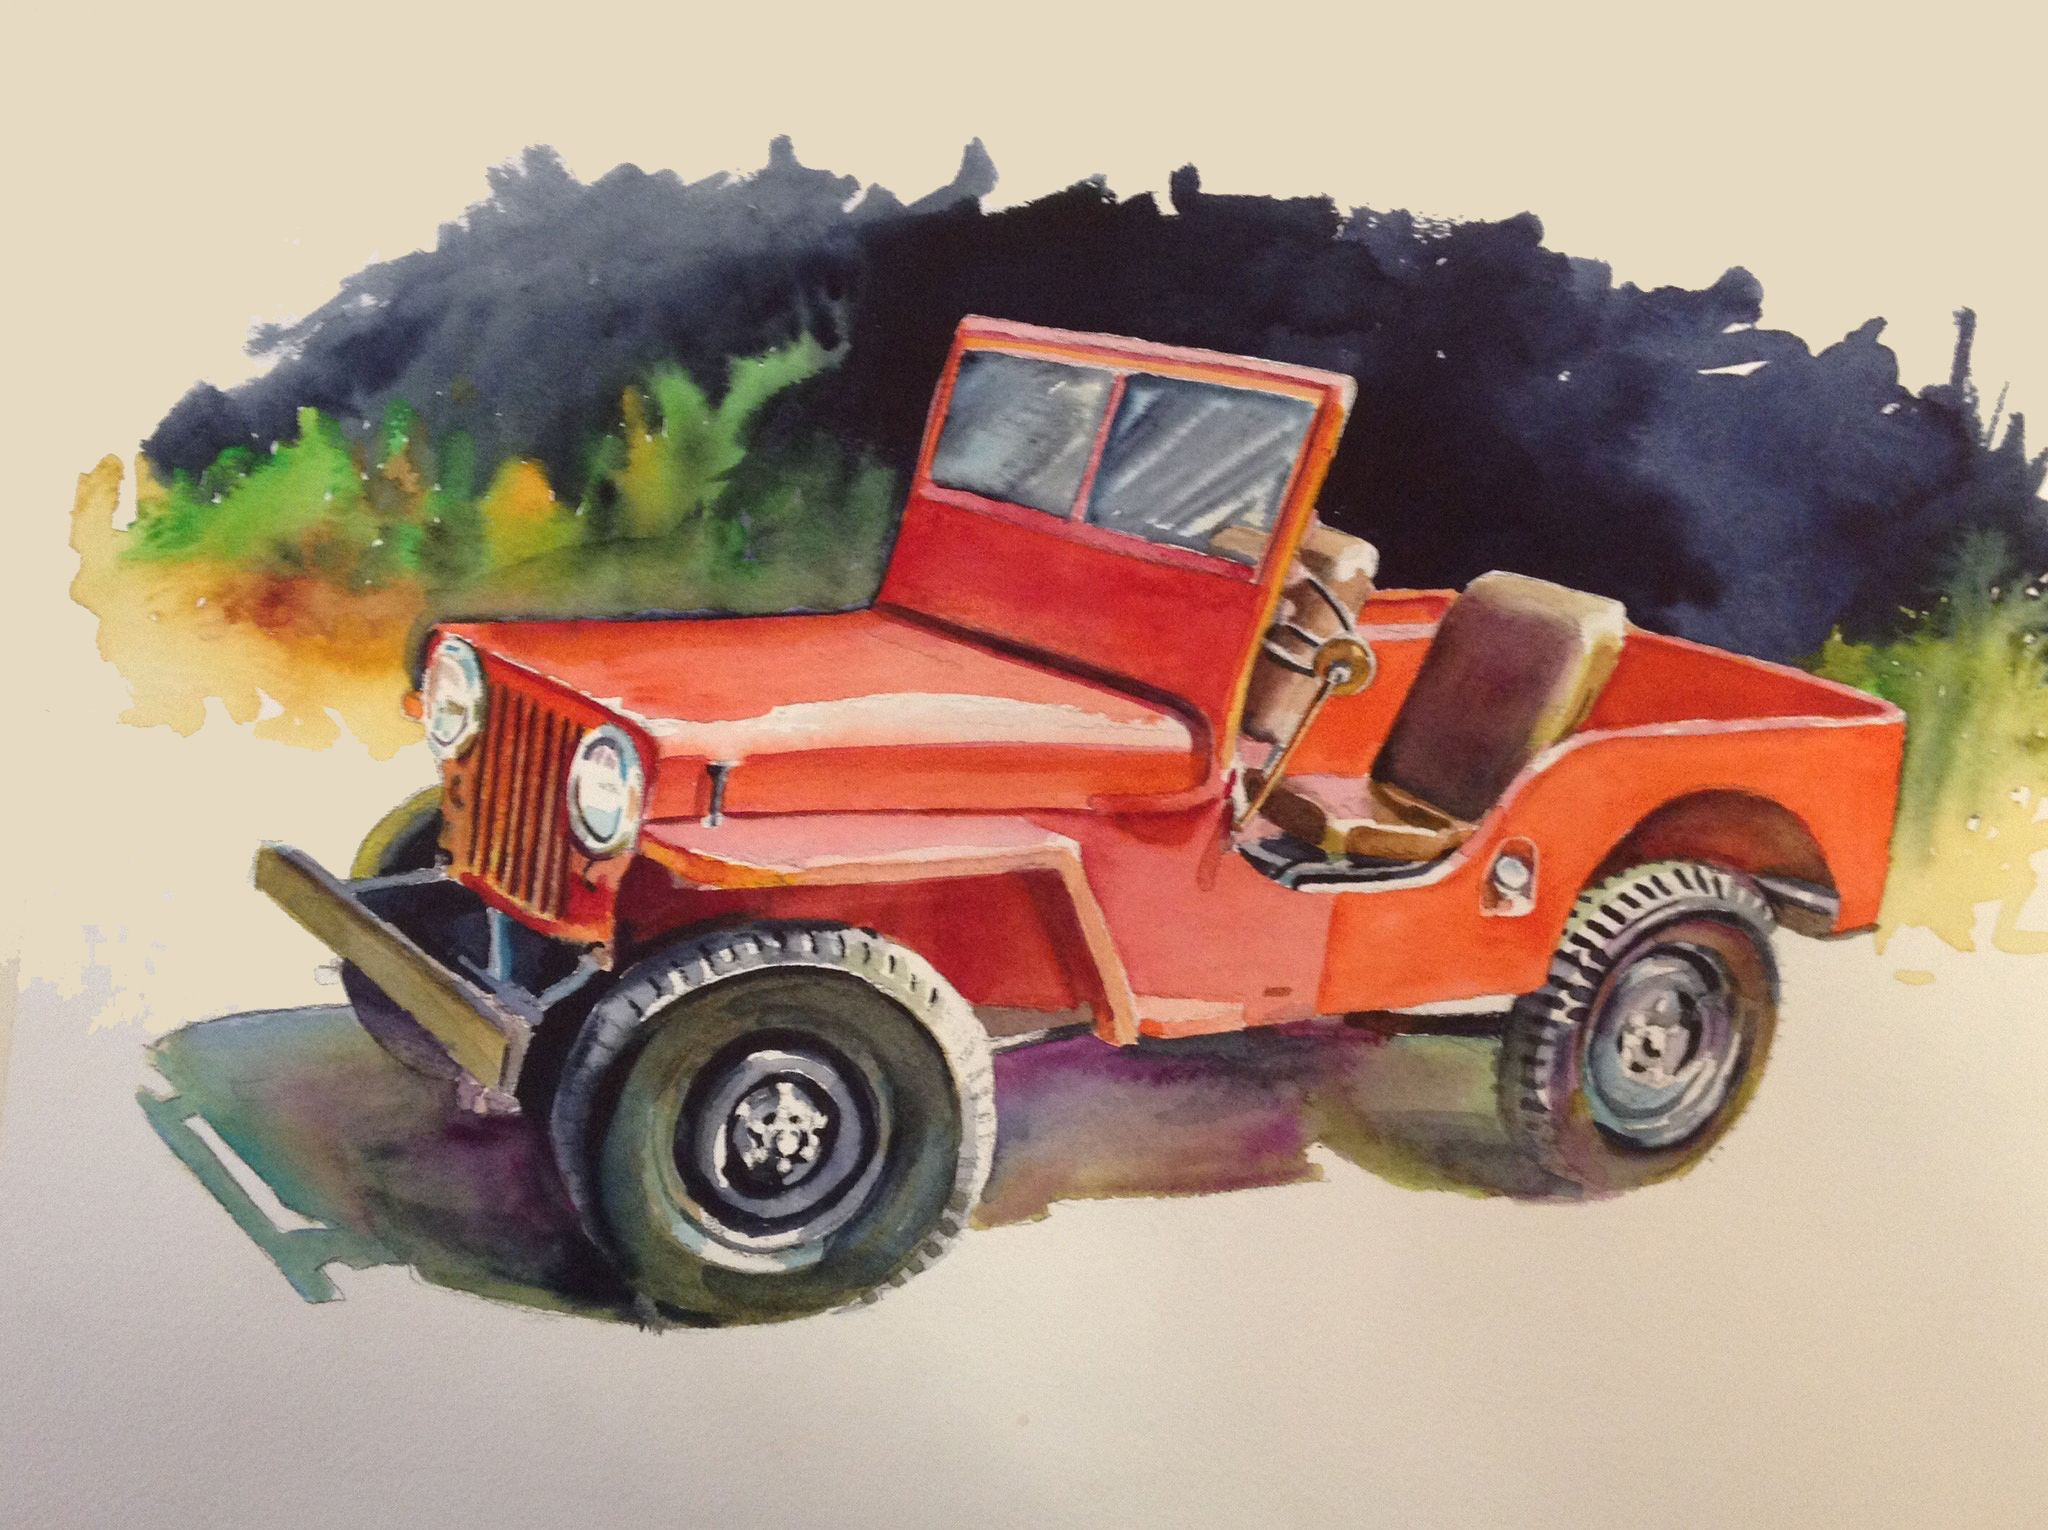 47 Jeep From My Recent Series Of Watercolor Sketches Of